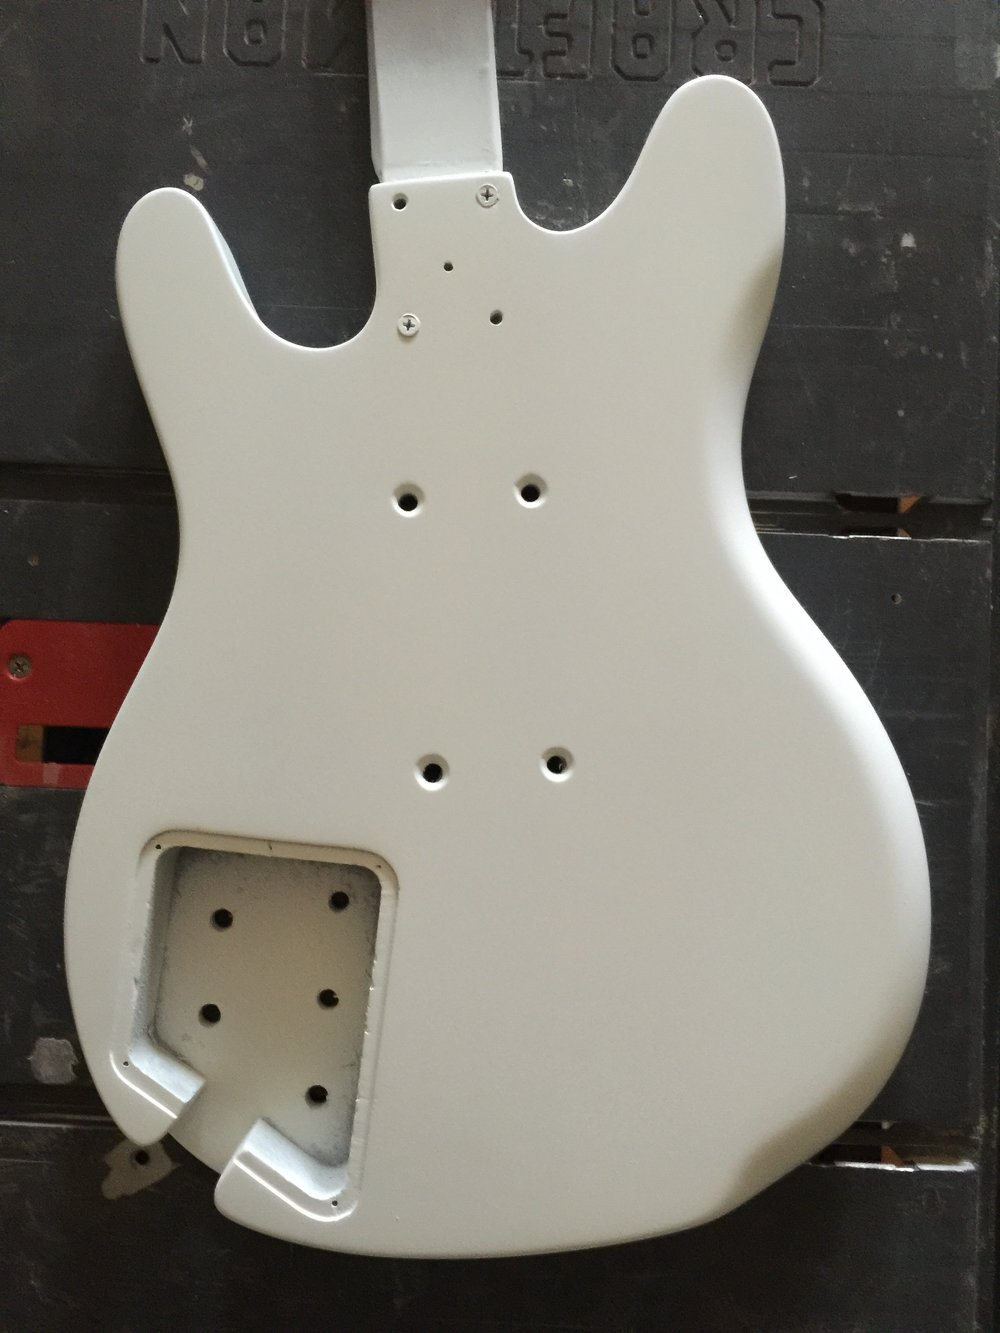 AFTER PRIMING, A MATTE WHITE GROUND COAT WAS SPRAYED